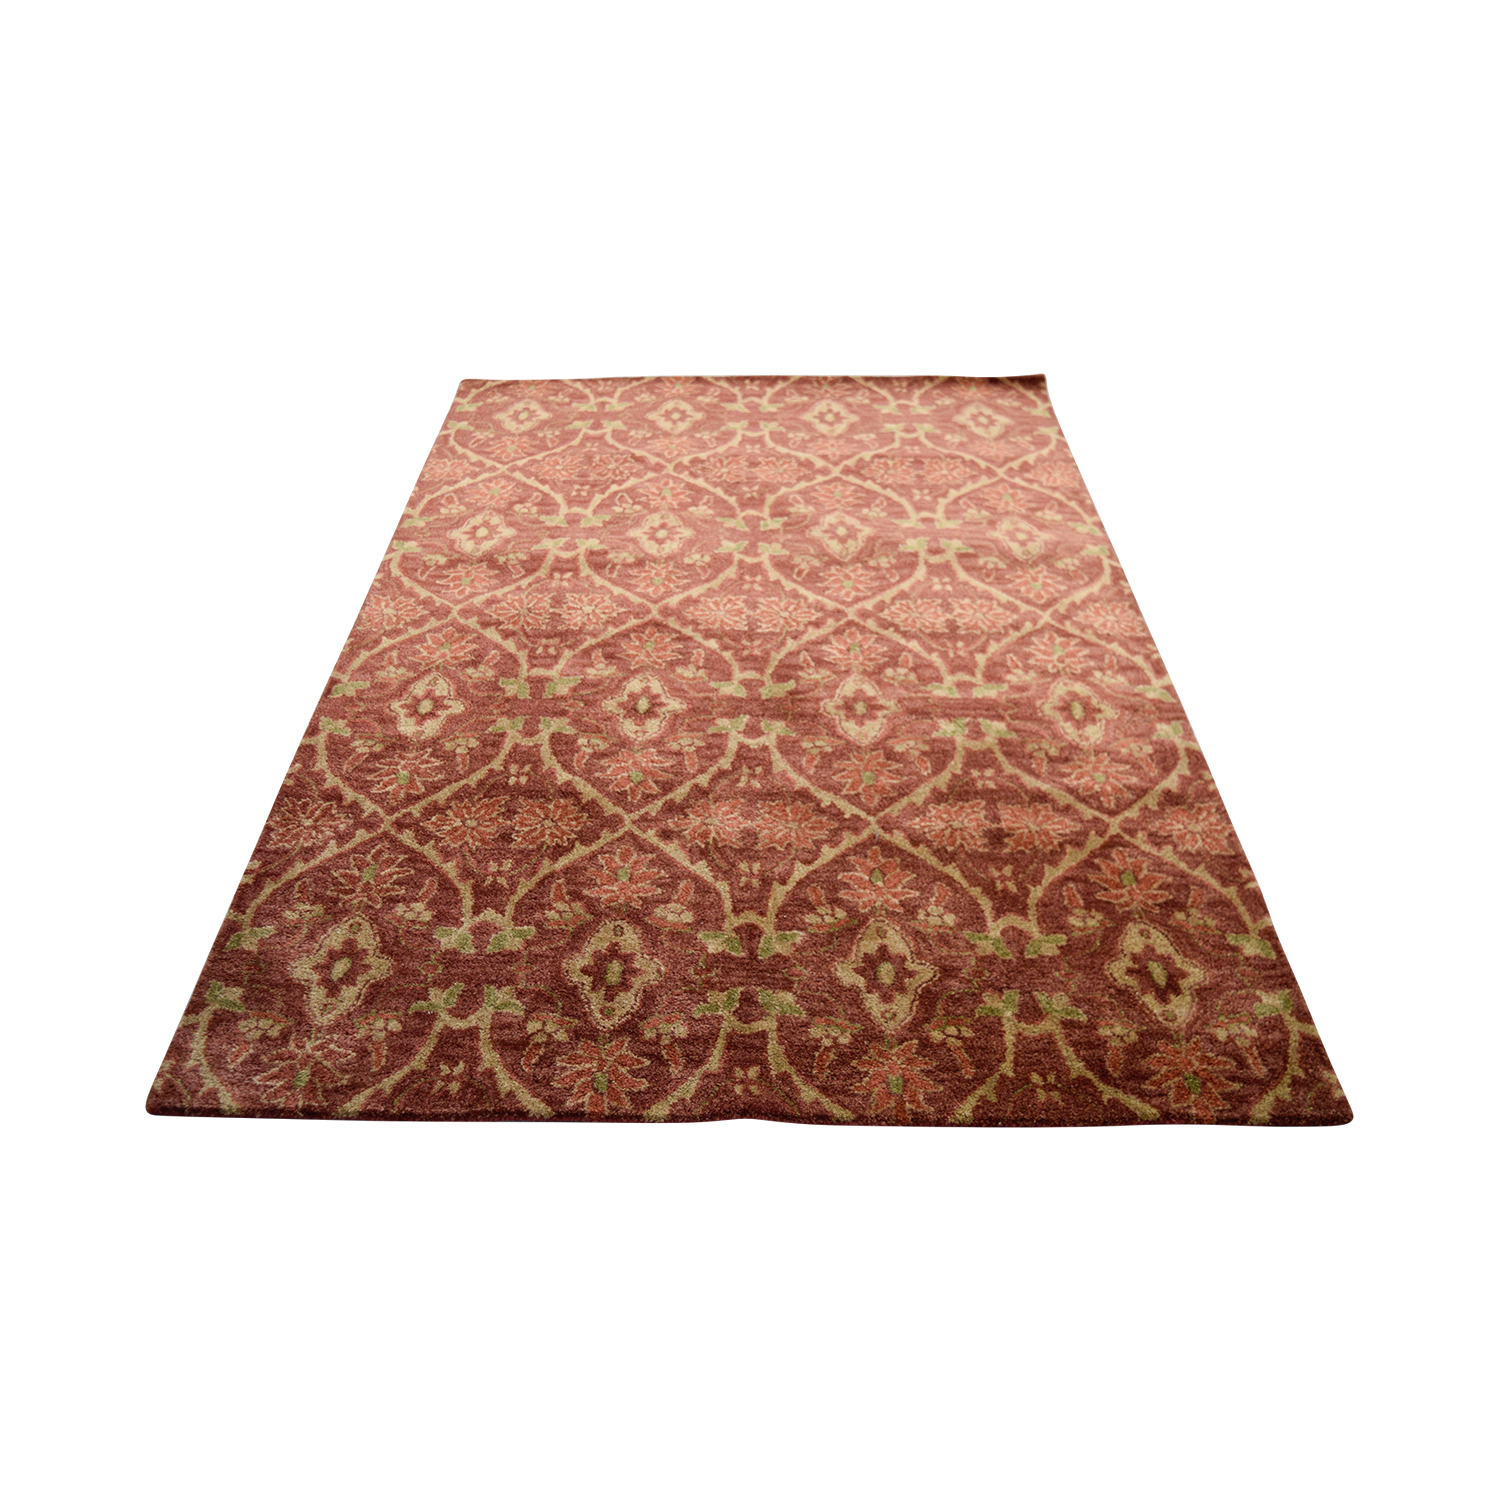 Obeetee Red Beige Wool Rug / Rugs